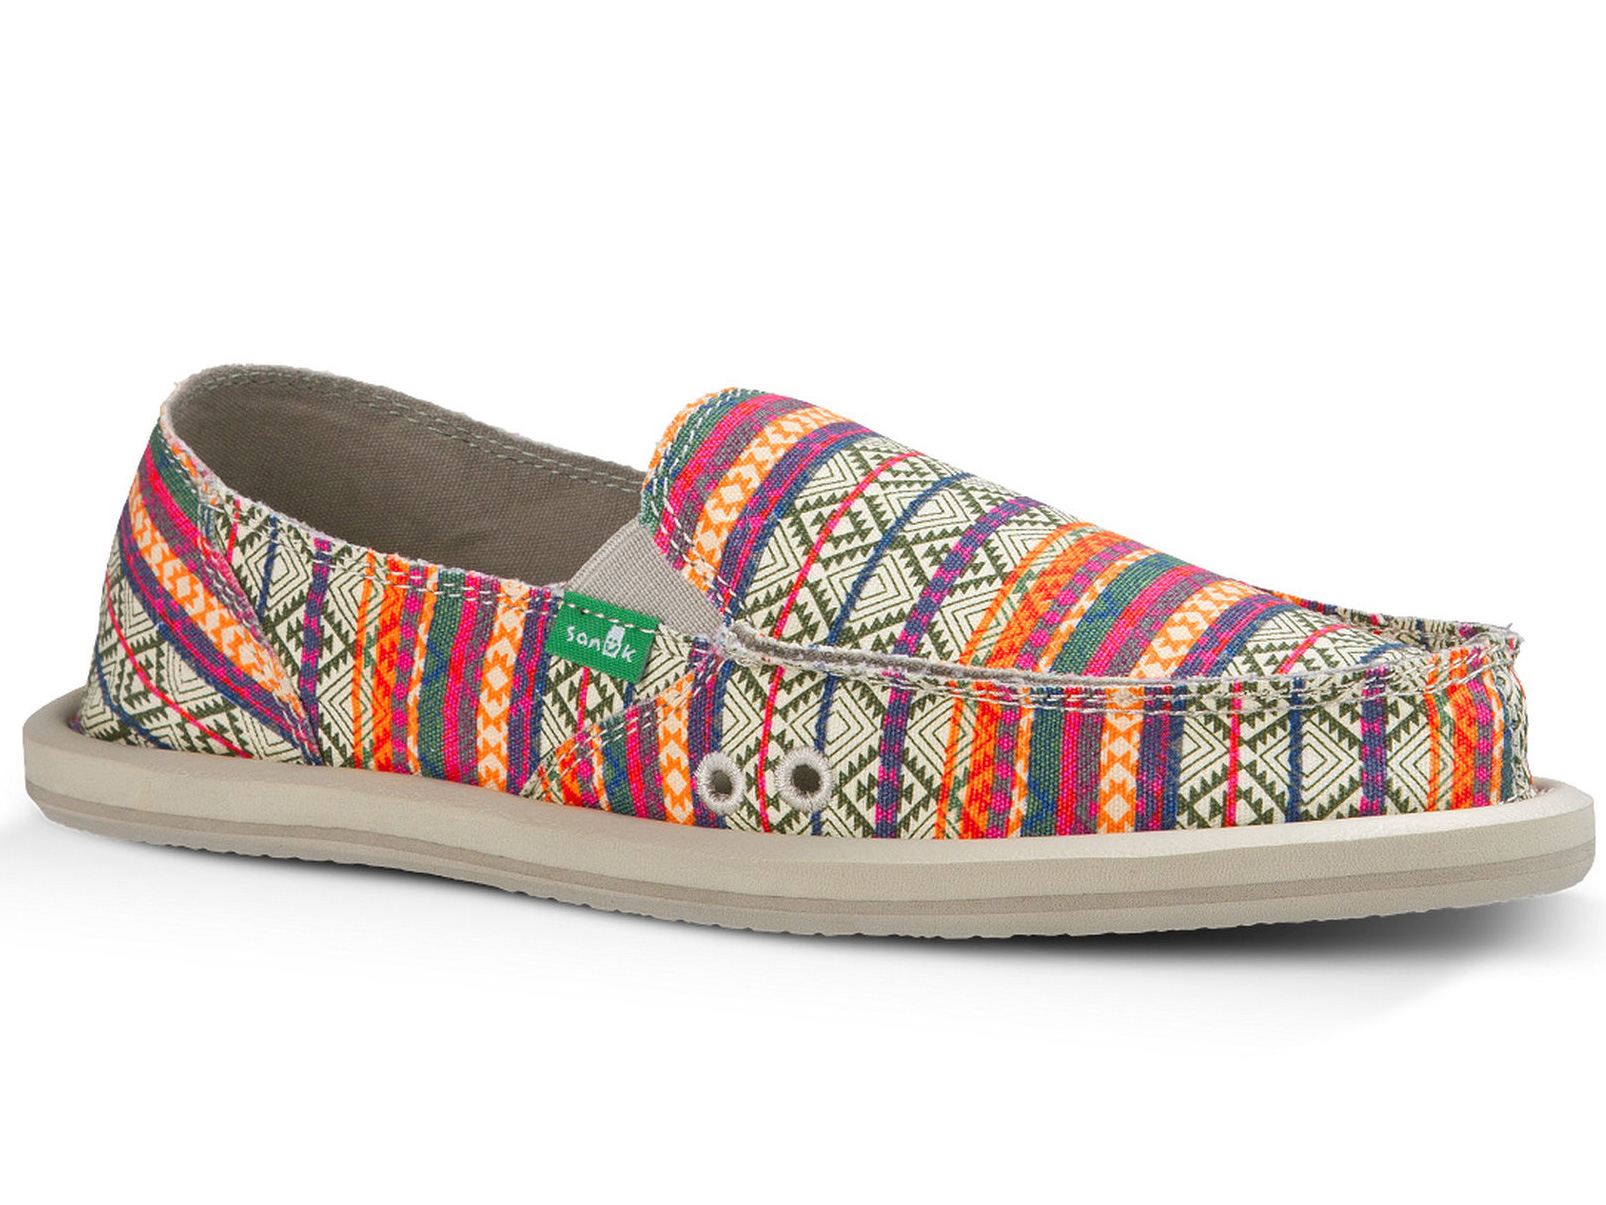 Sanuk Women's Donna Tribal Shoe - Olive/Multi Tribal Stripe - 6